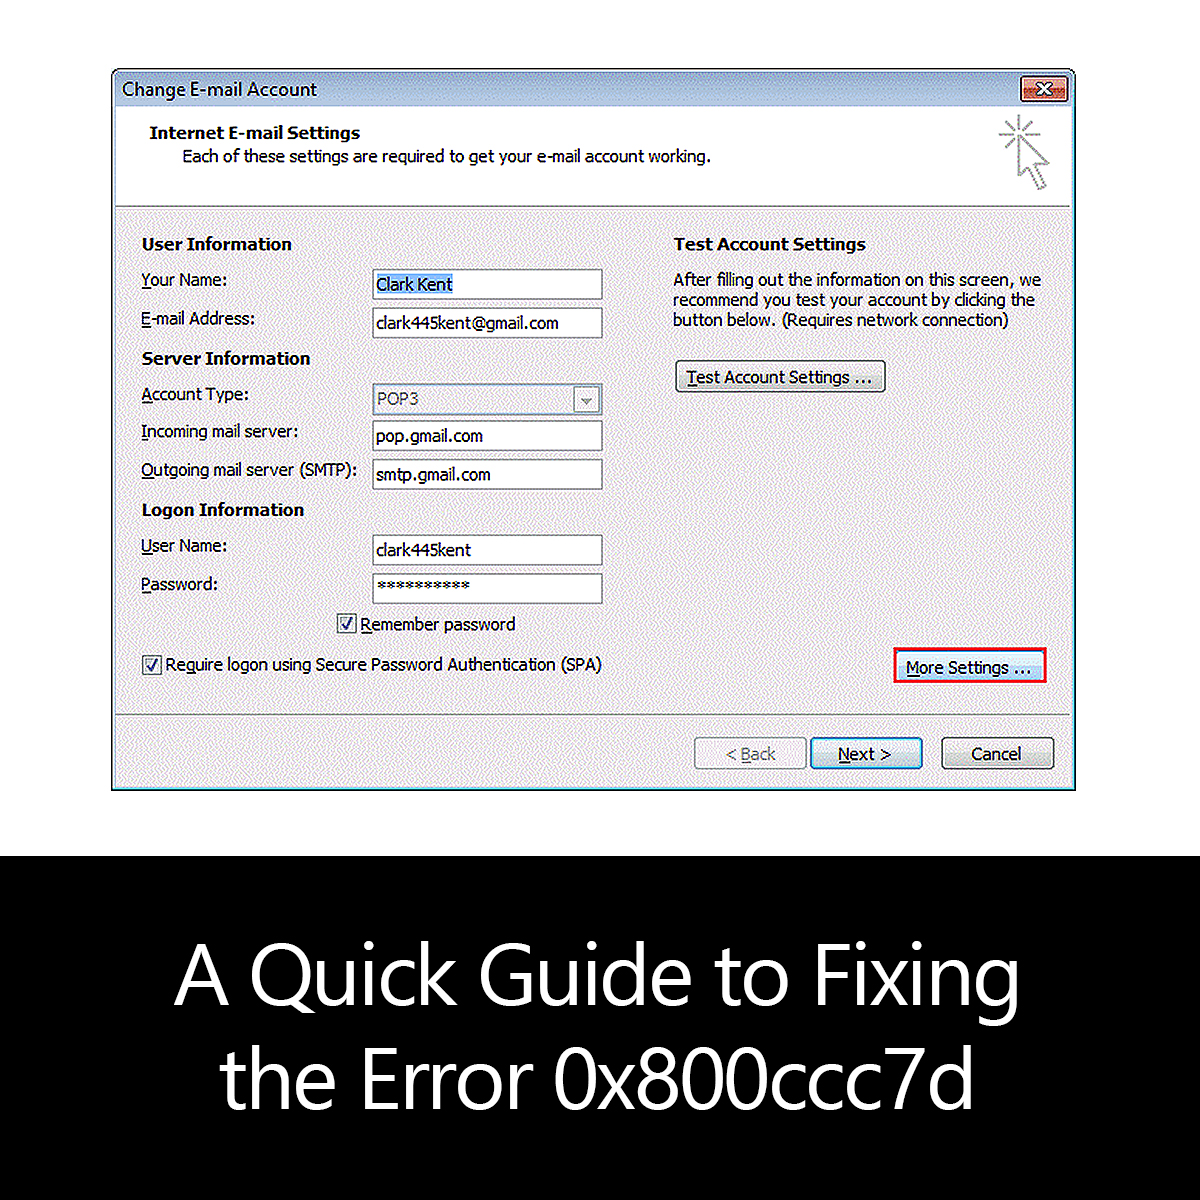 A Quick Guide to Fixing the Error 0x800ccc7d